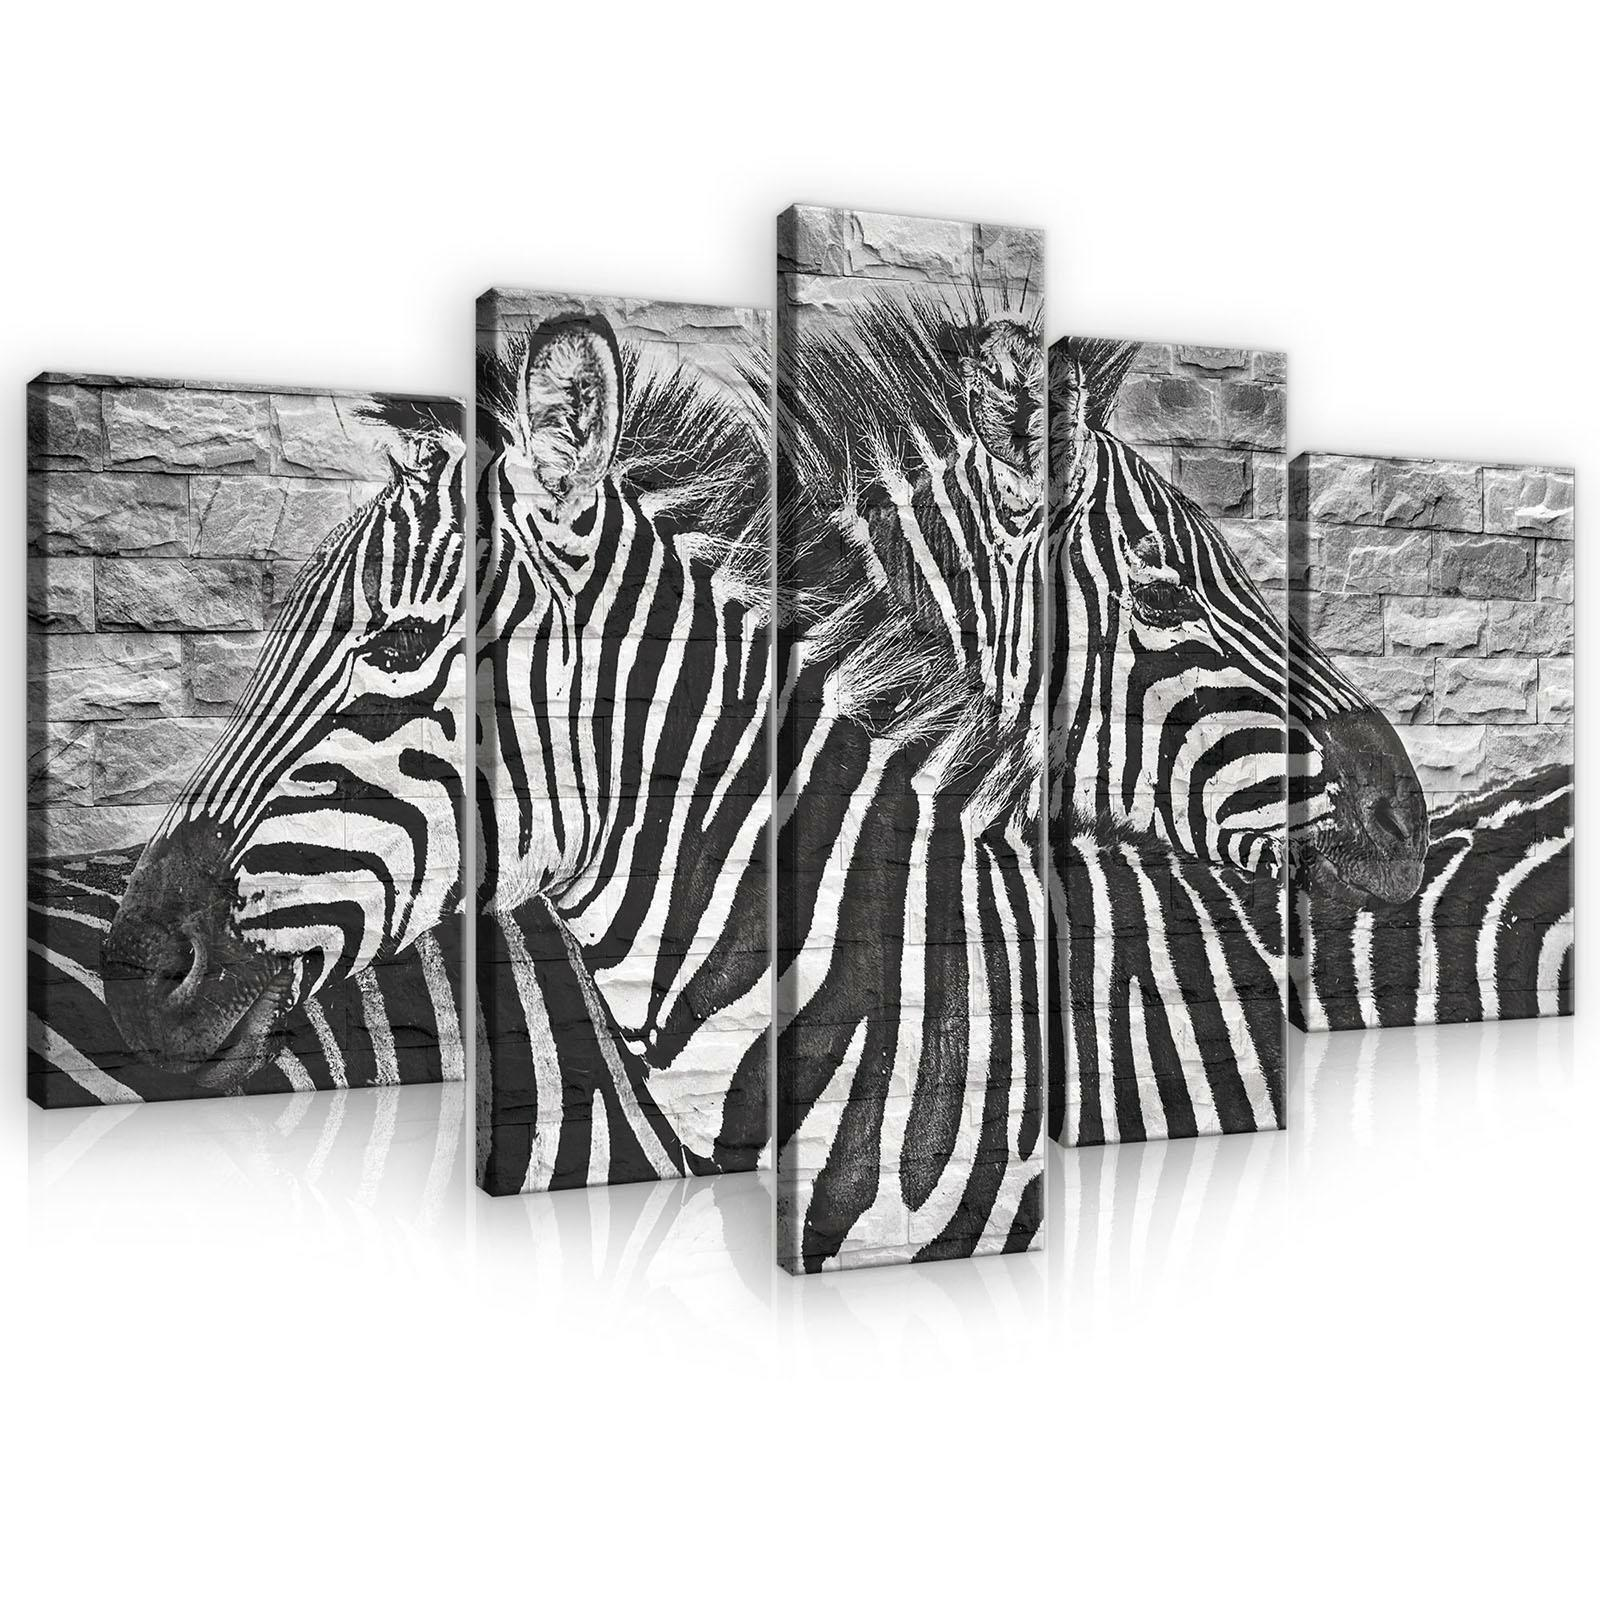 Immagine Parete Set Tela Stampa d'Arte 10113_ps4a-1 Canvas Picture Print Set ZEBRA